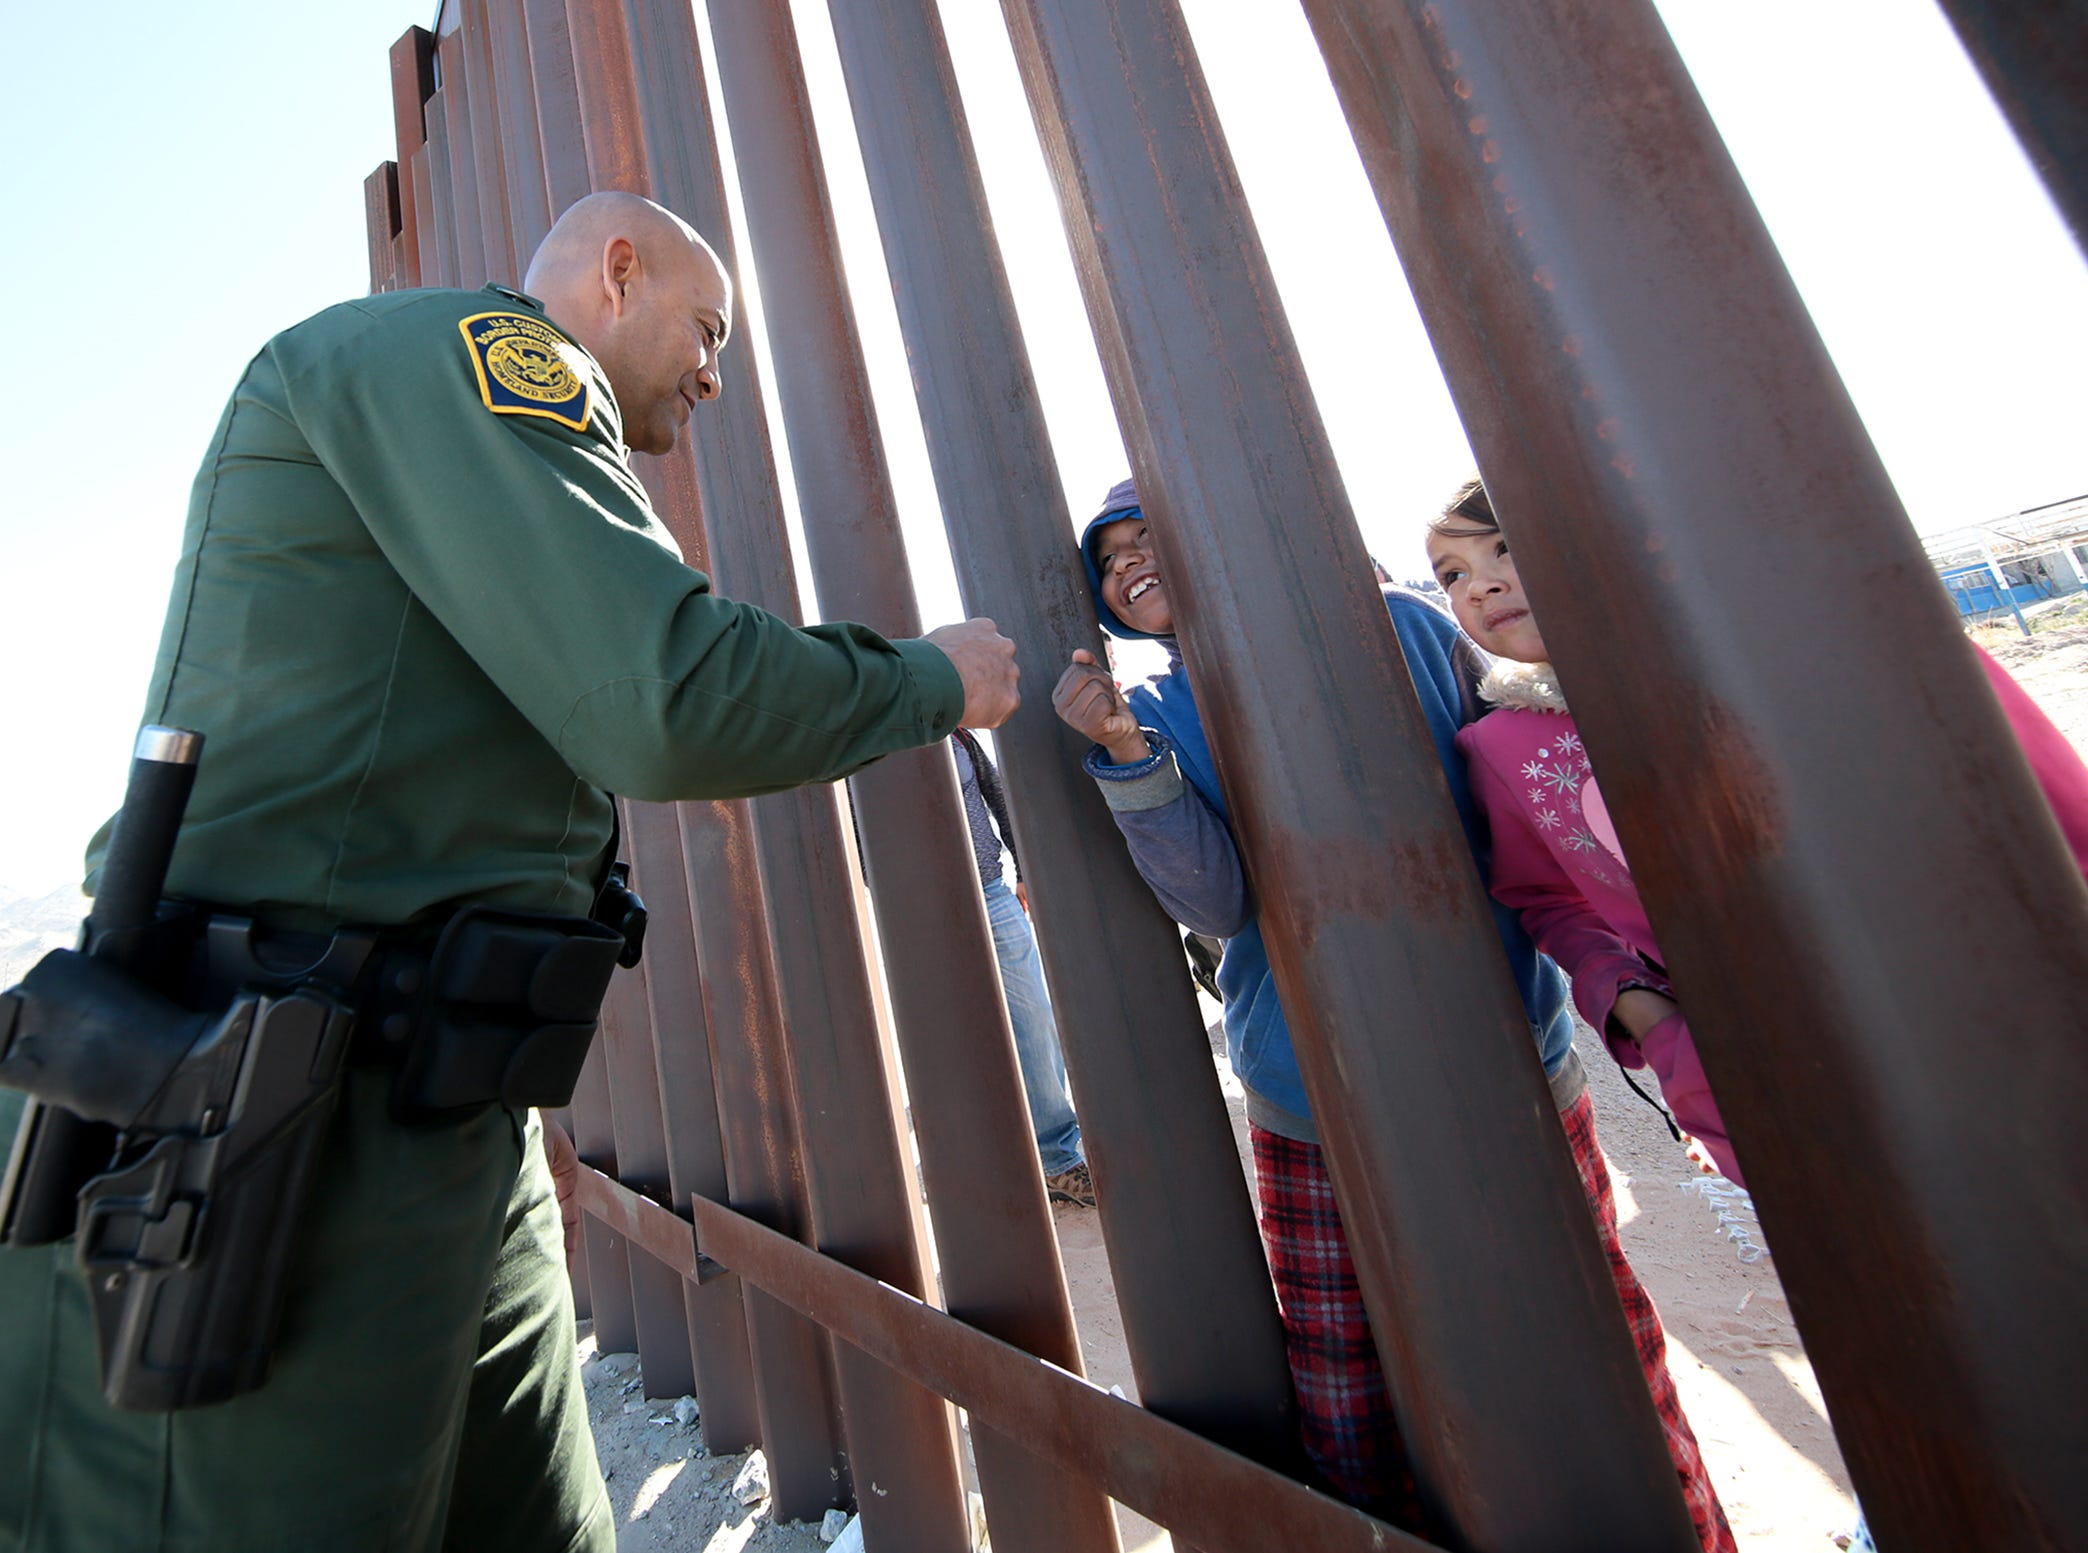 The U.S. Border Patrol along with ICE trained recently along the border fence in Anapra, N.M. The training is preparation for any border surge that might occur.